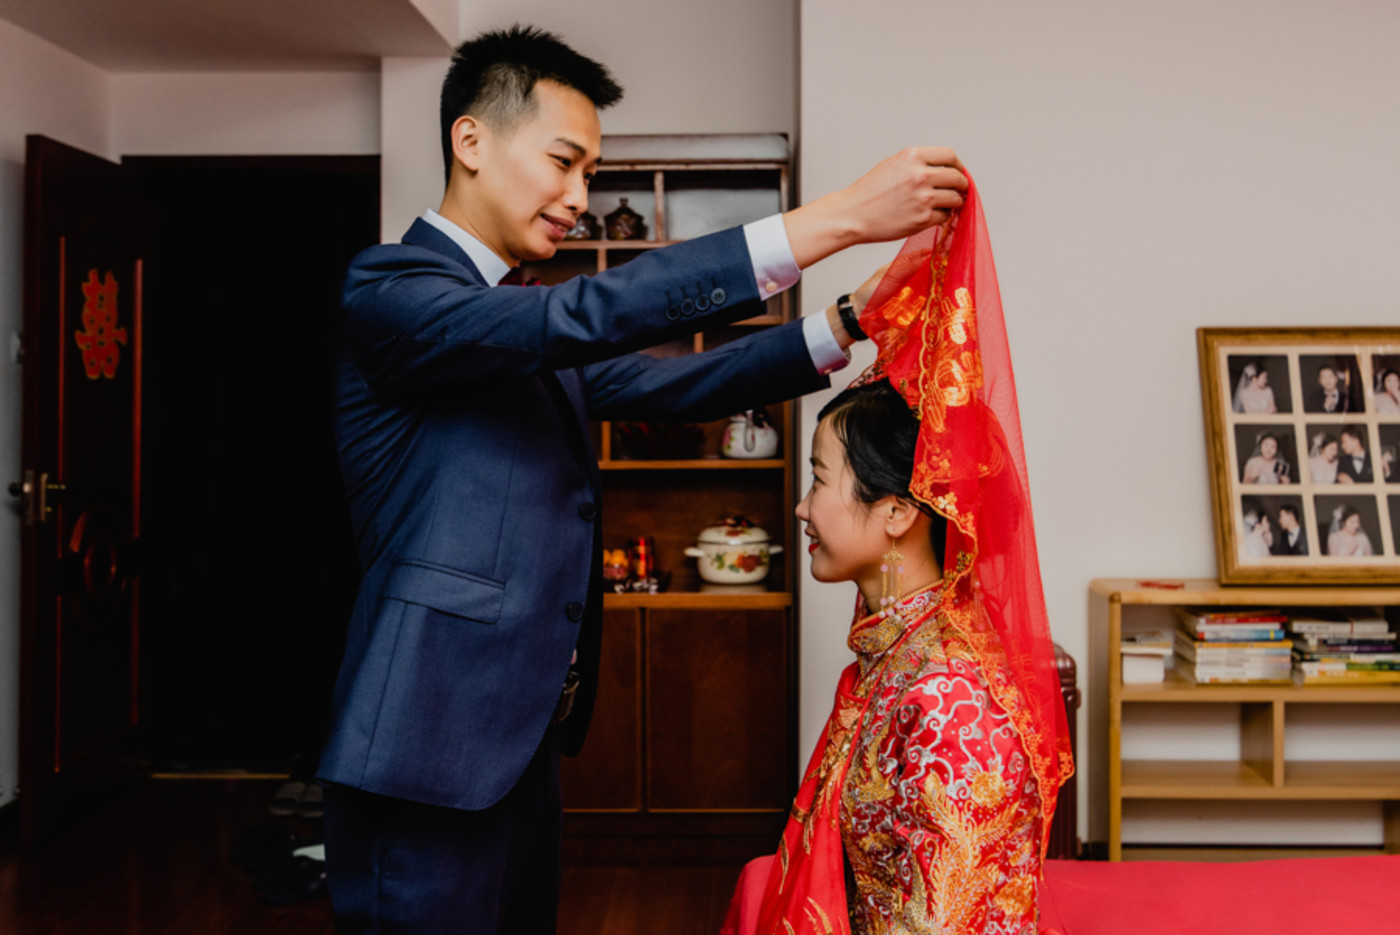 LUO&ZHANG47